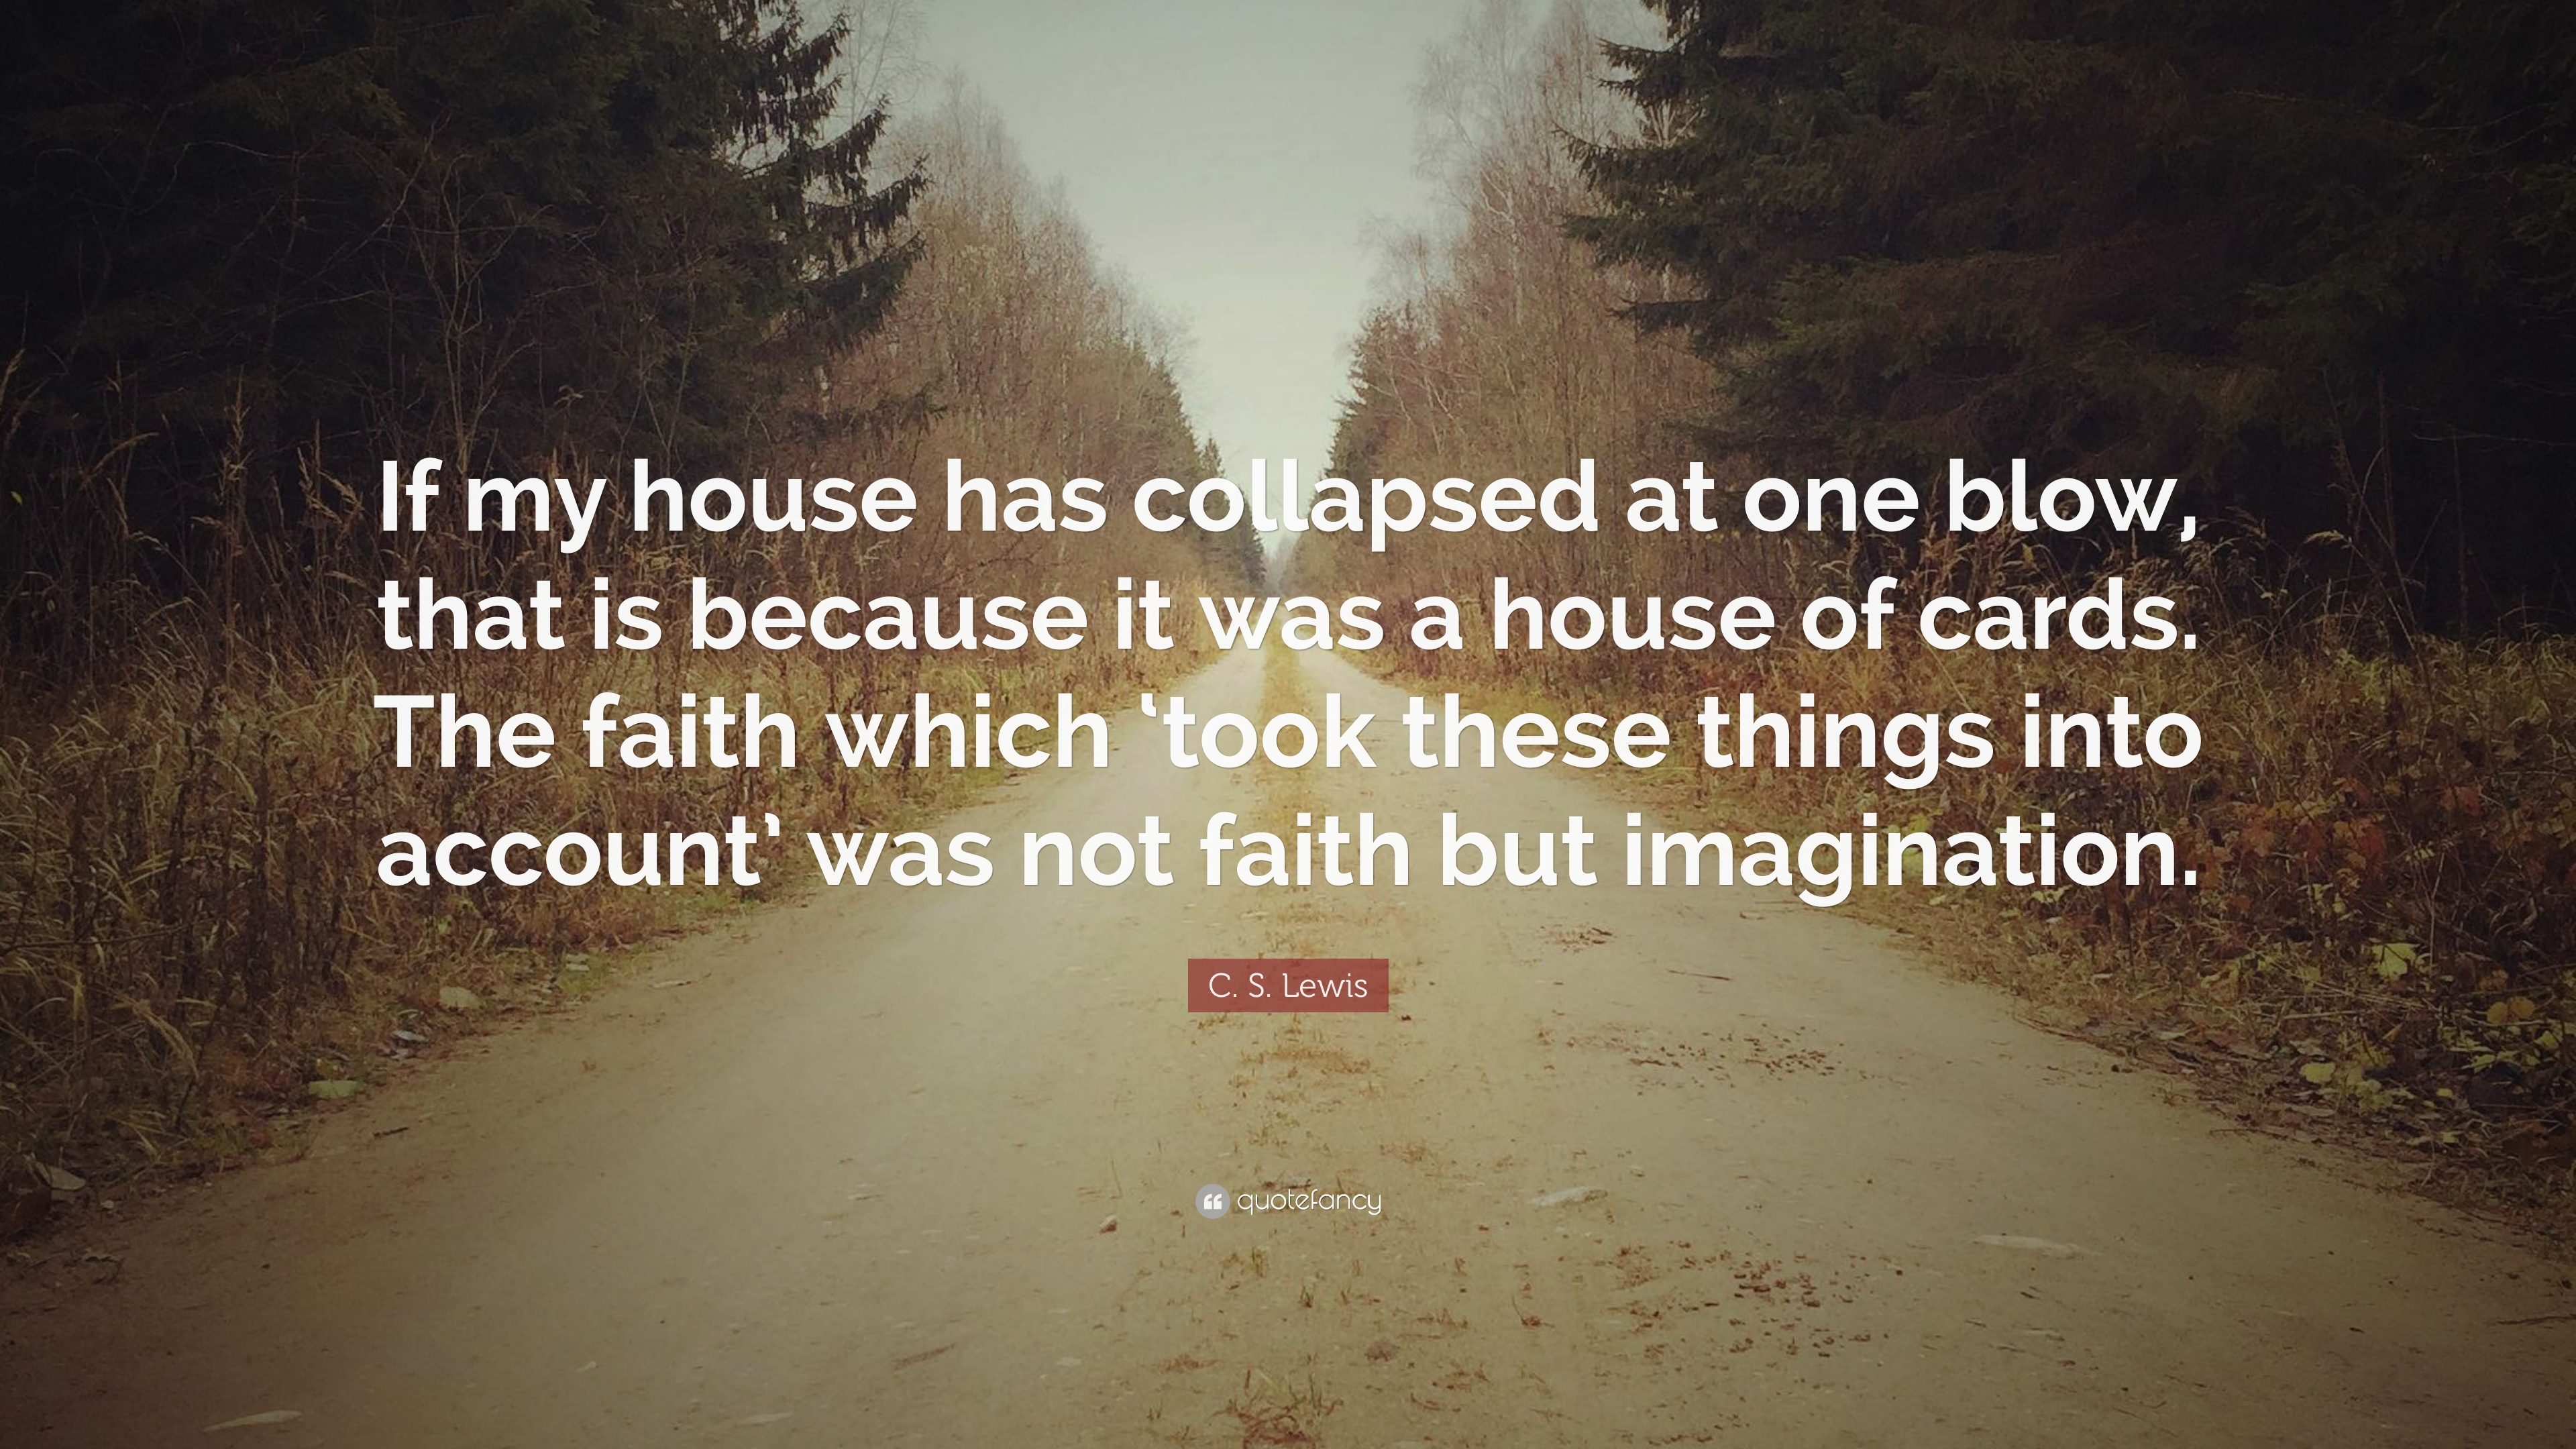 C S Lewis Quote If My House Has Collapsed At One Blow That Is